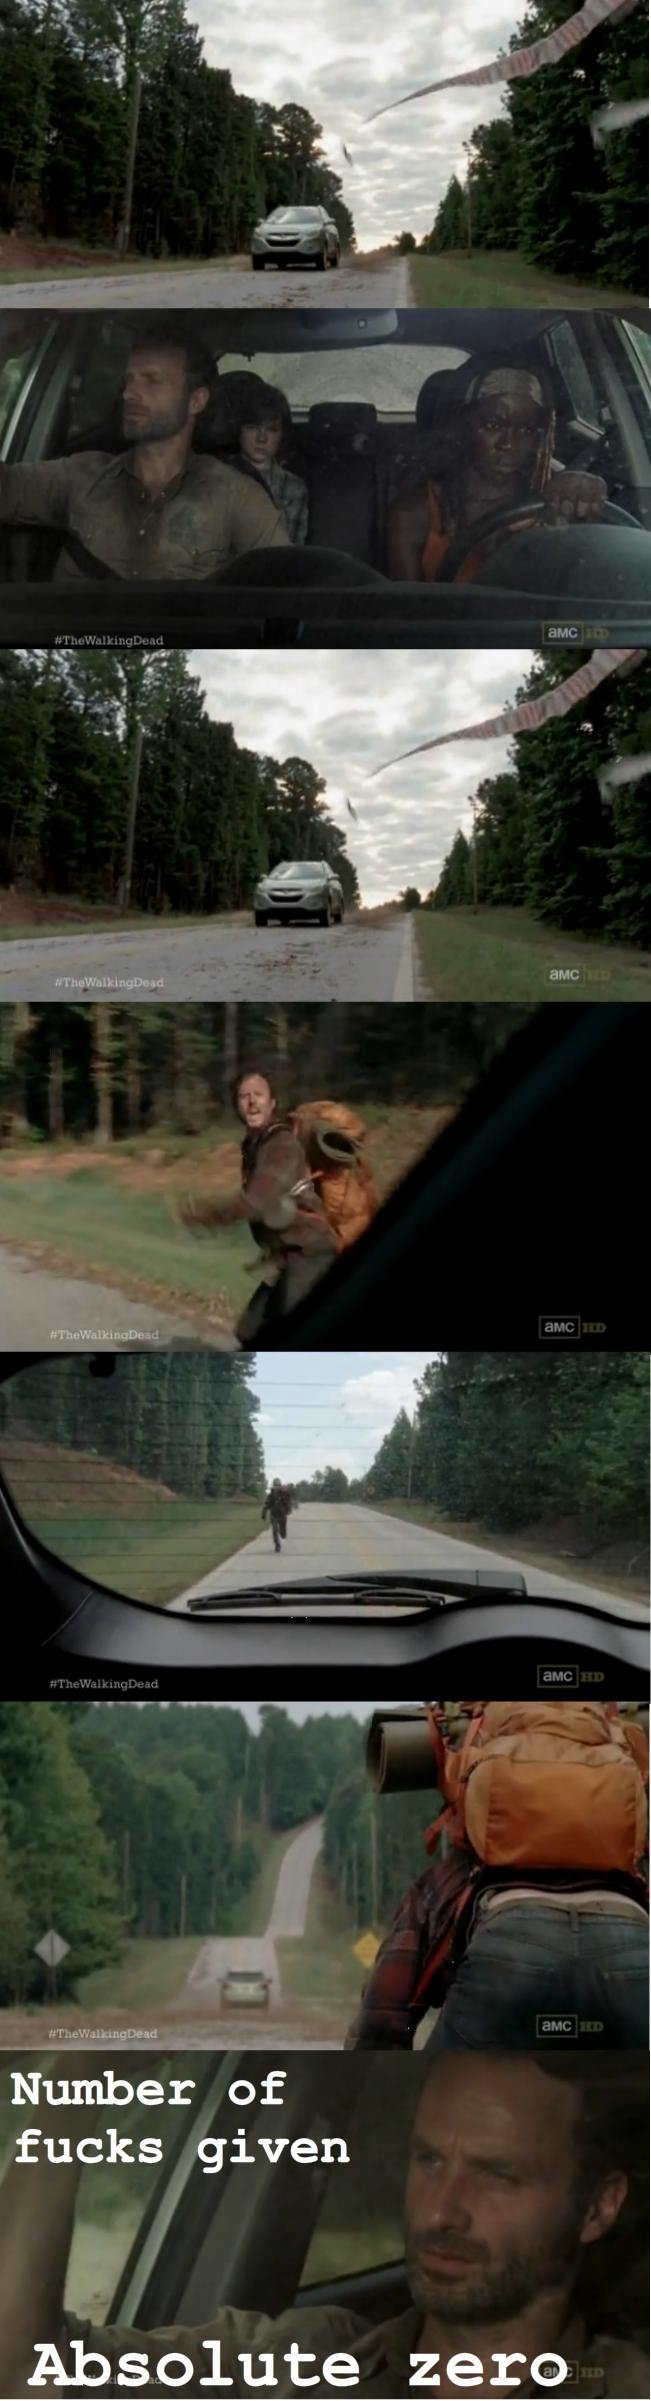 Rick you little rascal... OC brah.. With those three in the car the number of is in the negative.